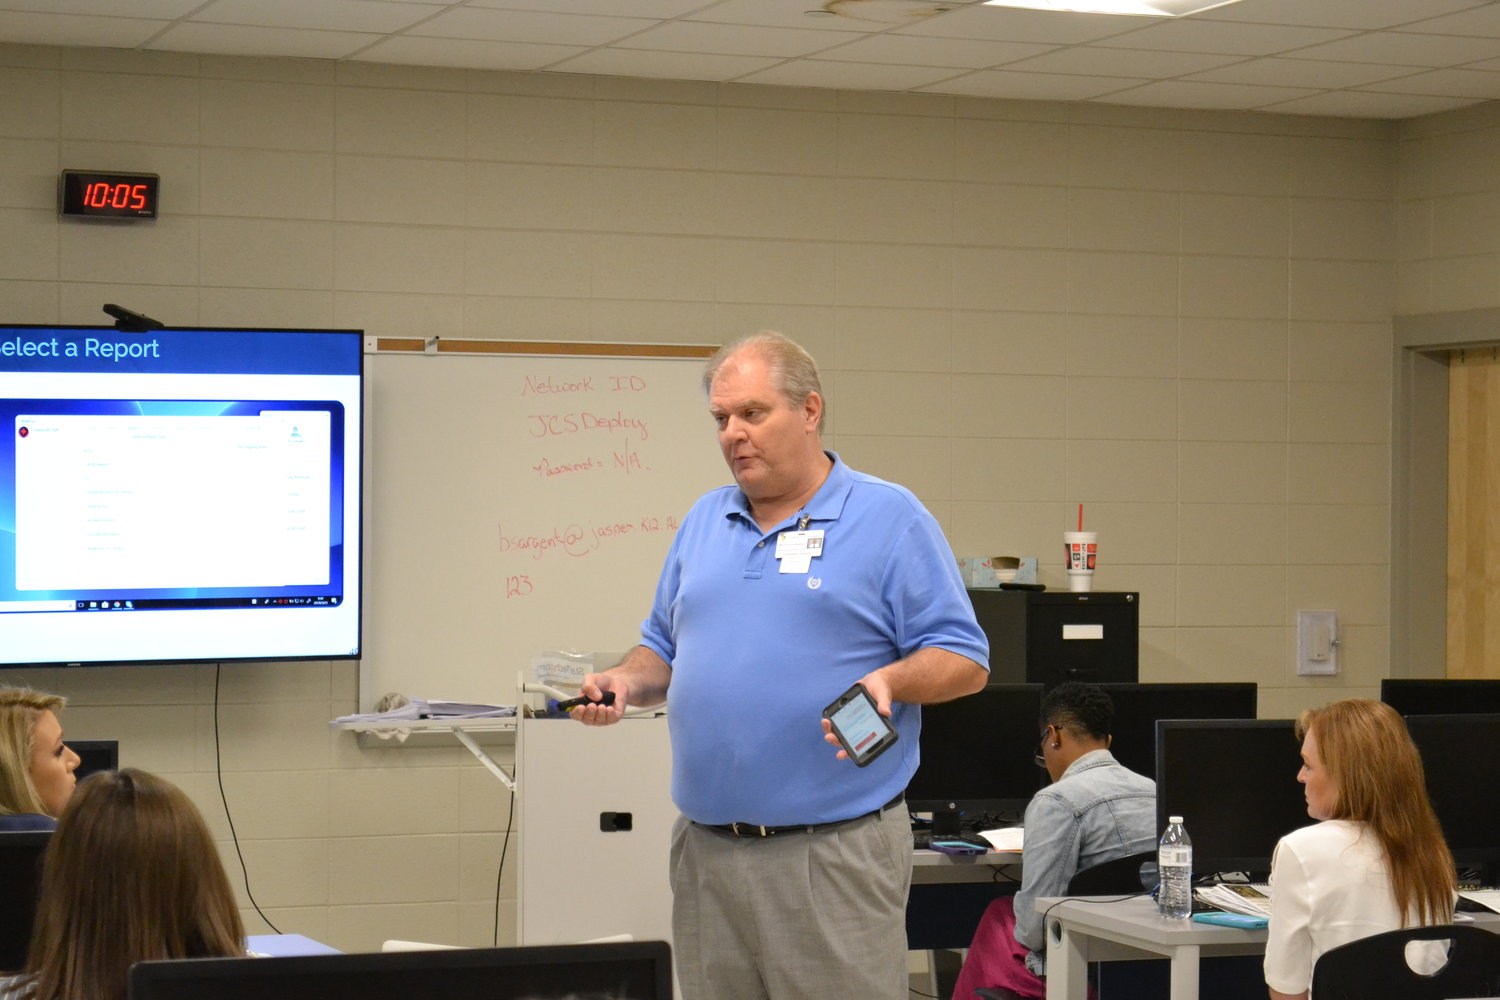 Butch Sargent led a class at Jasper High School on Wednesday, teaching faculty how to use the CrisisGo app.